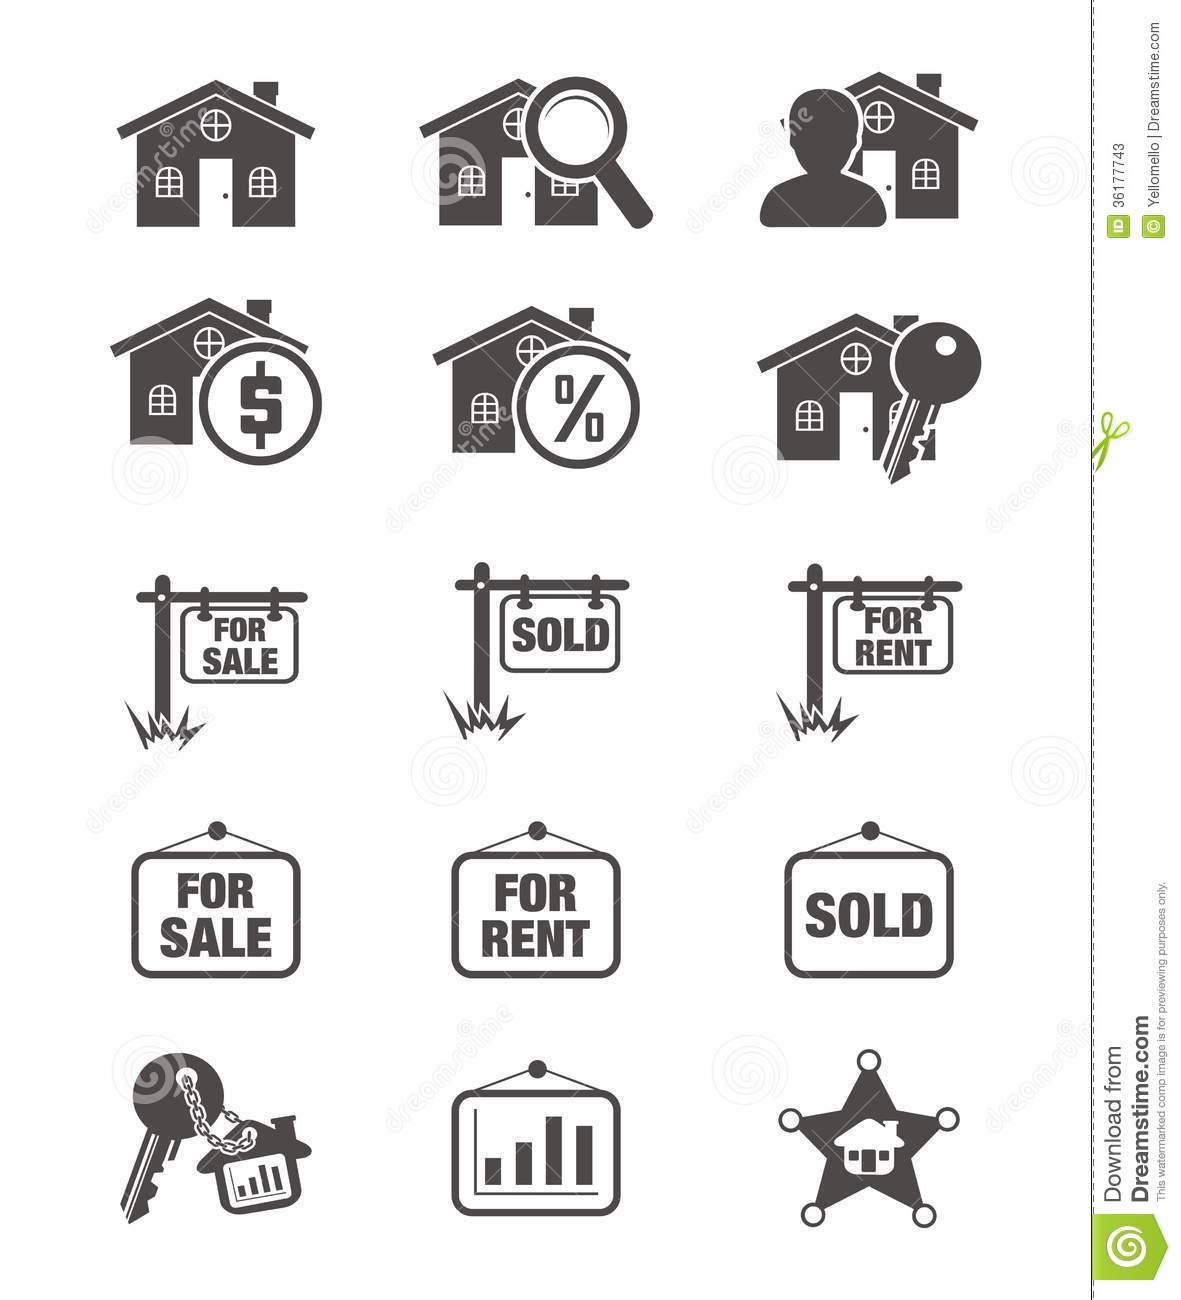 Real Estate Silhouette Icon Stock Vector Illustration Of